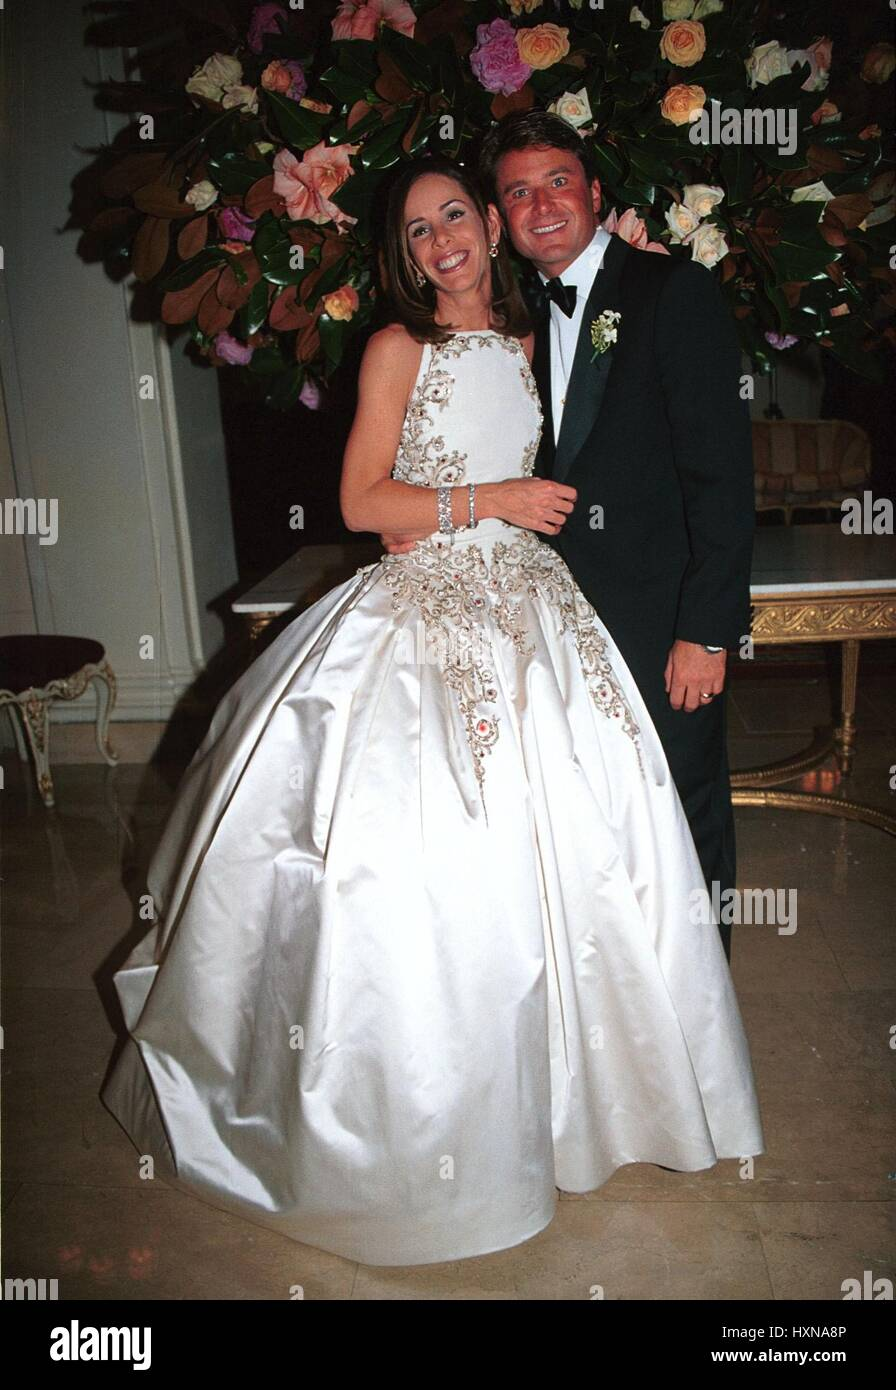 Melissa Rivers with her husband on their wedding day. © RTalensick ...